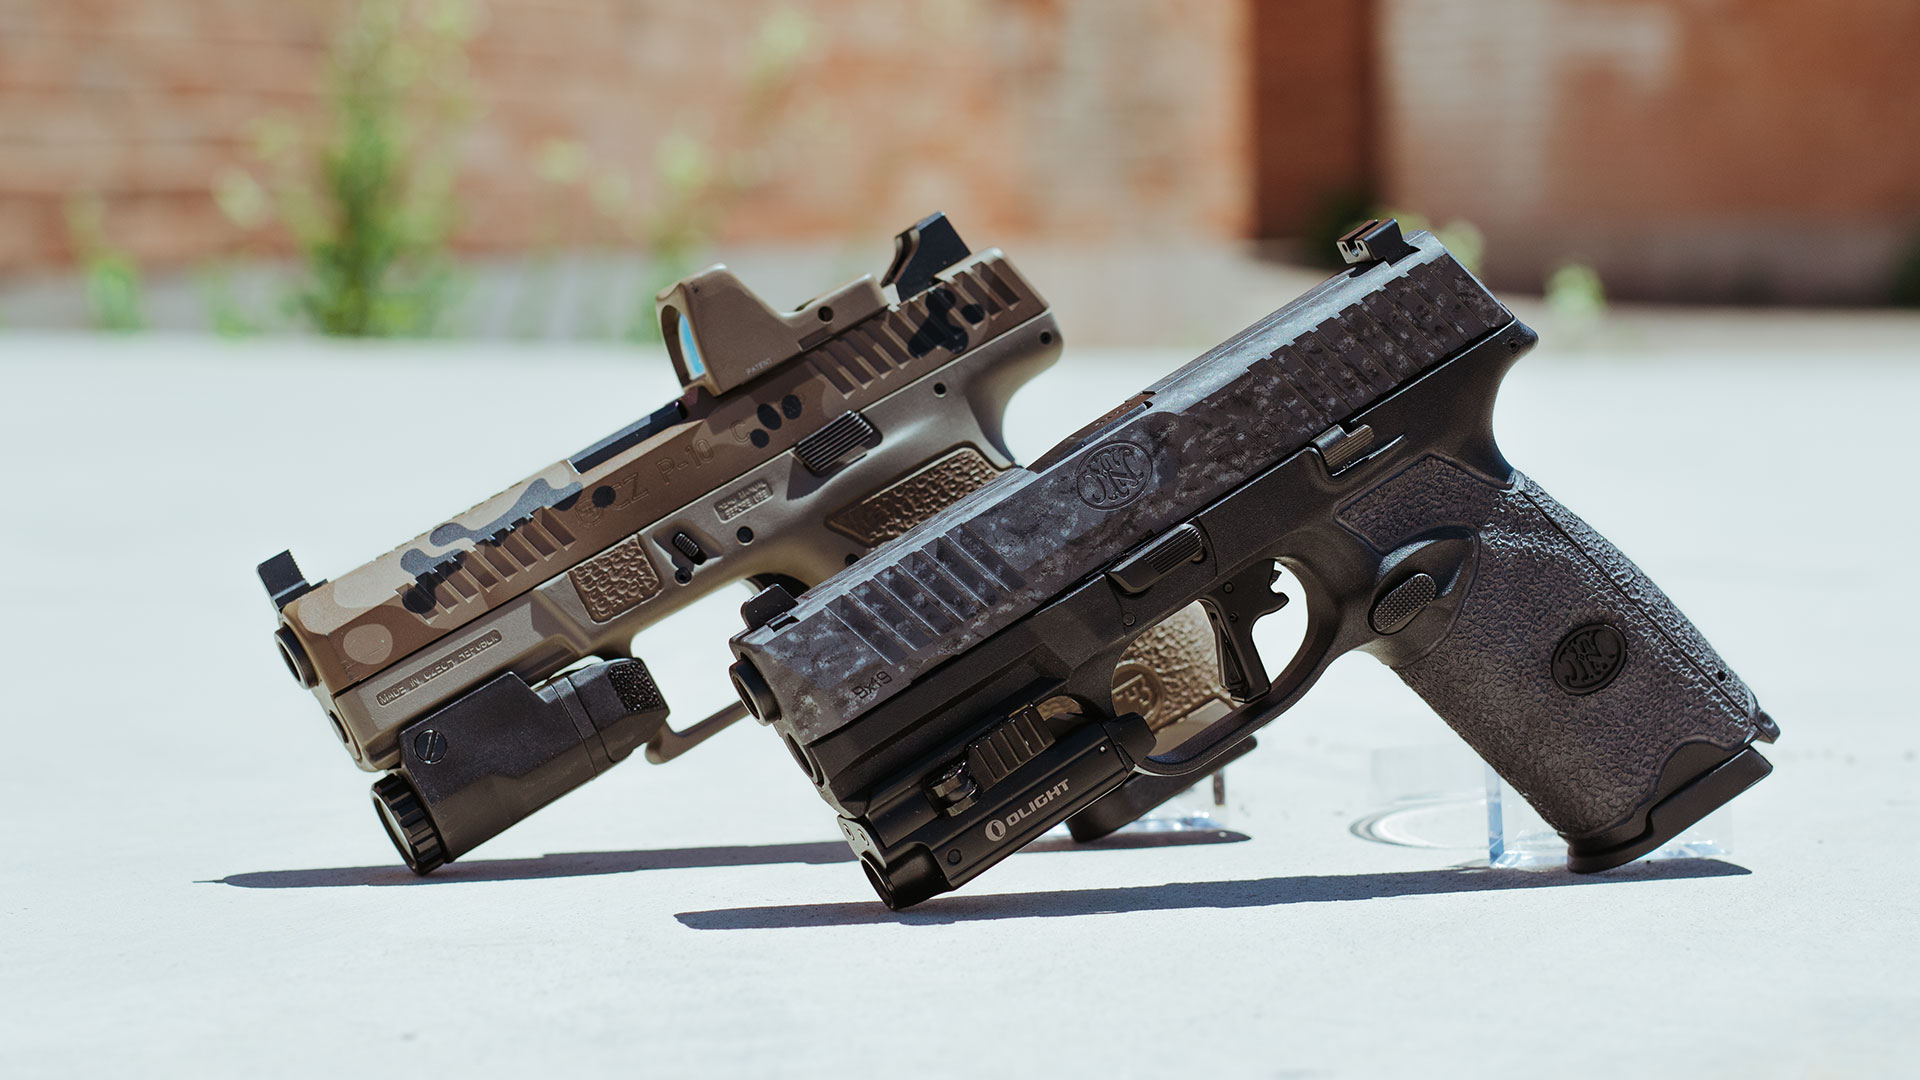 Two tactical guns